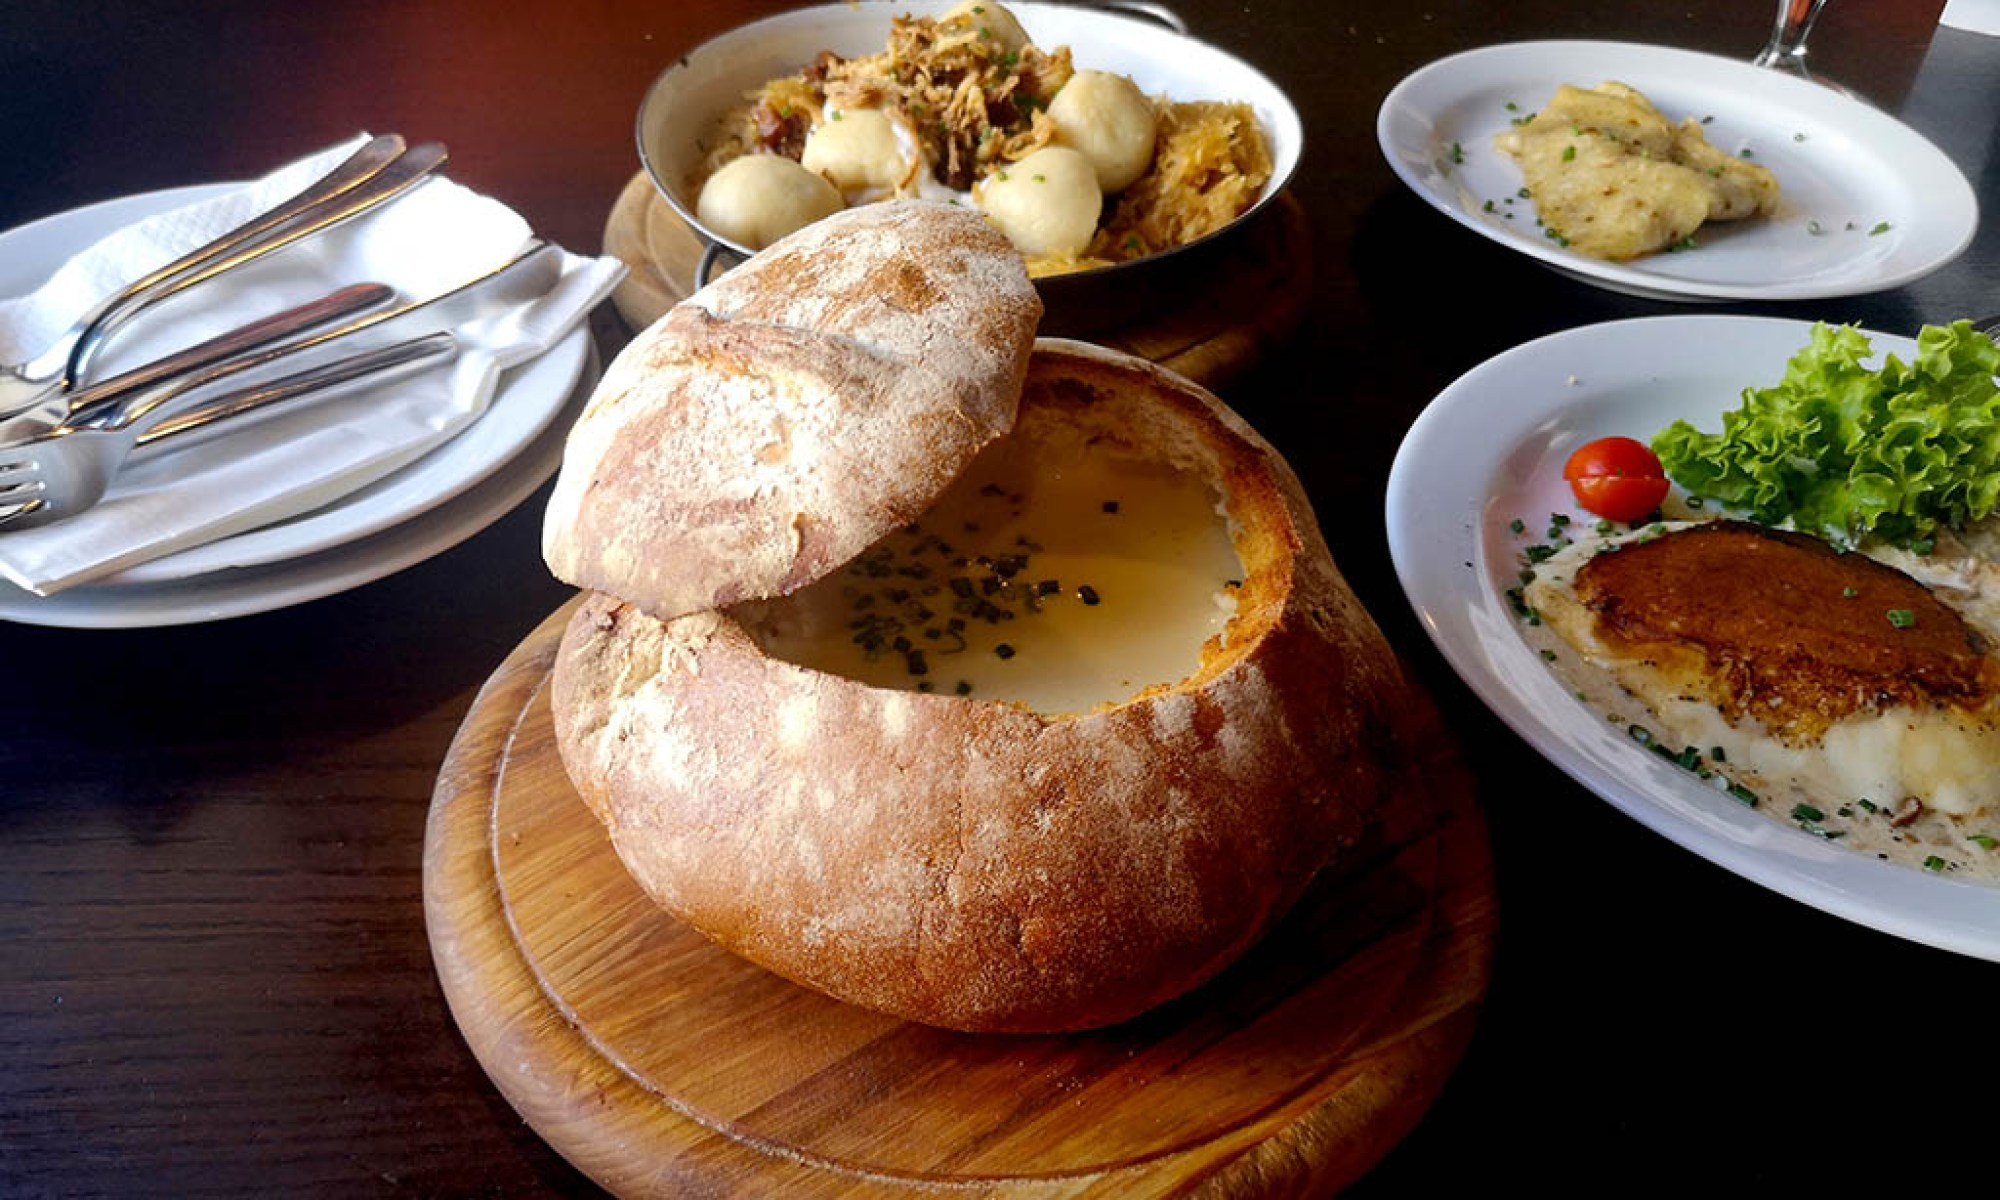 Creamy garlic soup served in a giant bread roll in Meštiansky Pivovar, Bratislava's oldest brewery